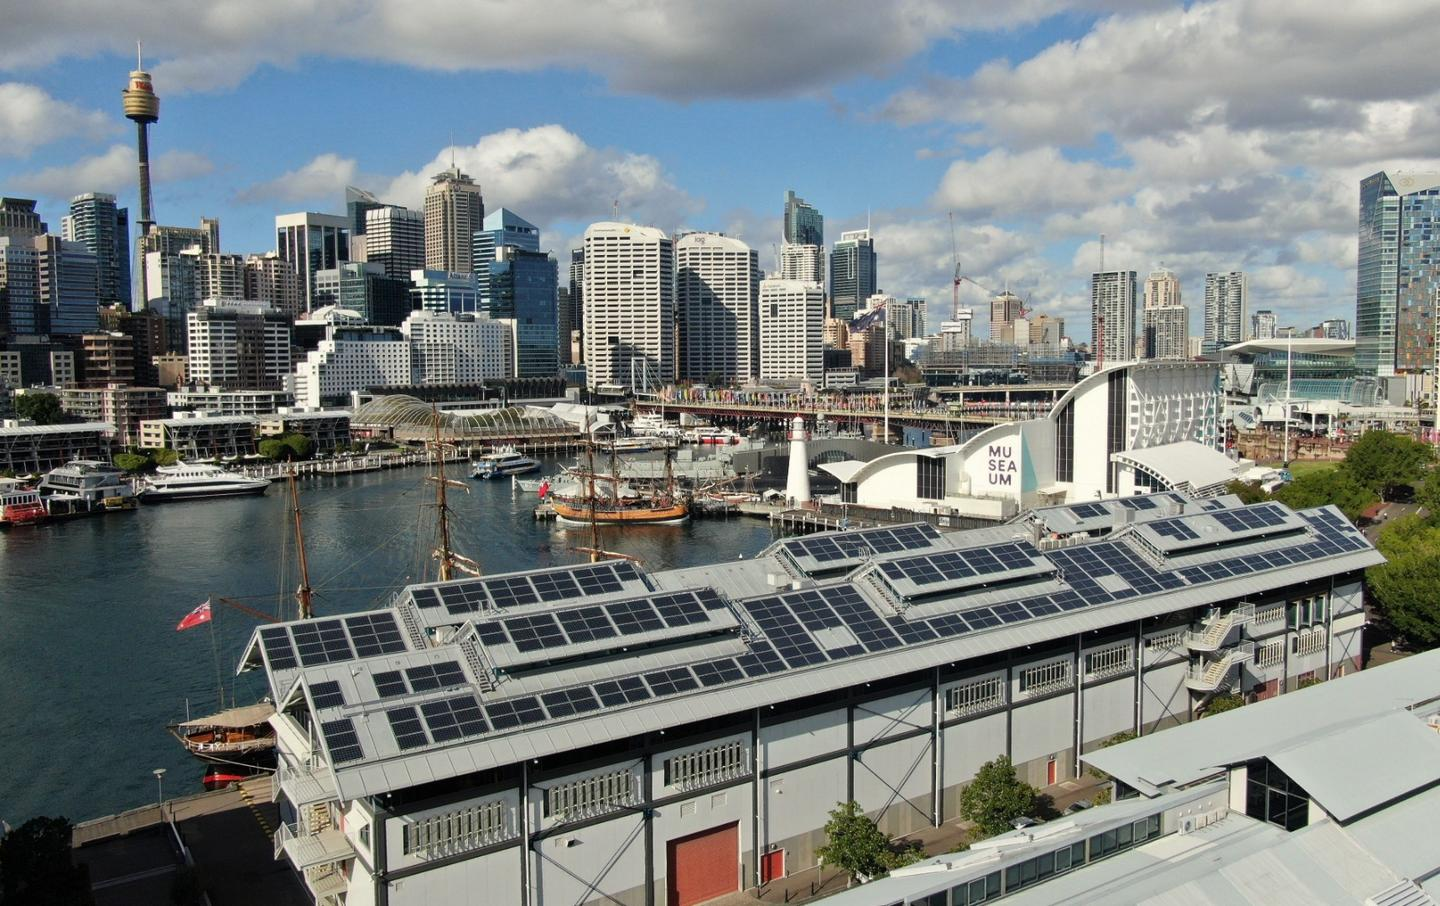 The 235-kilowatt, 812-panel, rooftop solar installation at theAustralian National Maritime Museum is the largest lightweight solar roof in the country